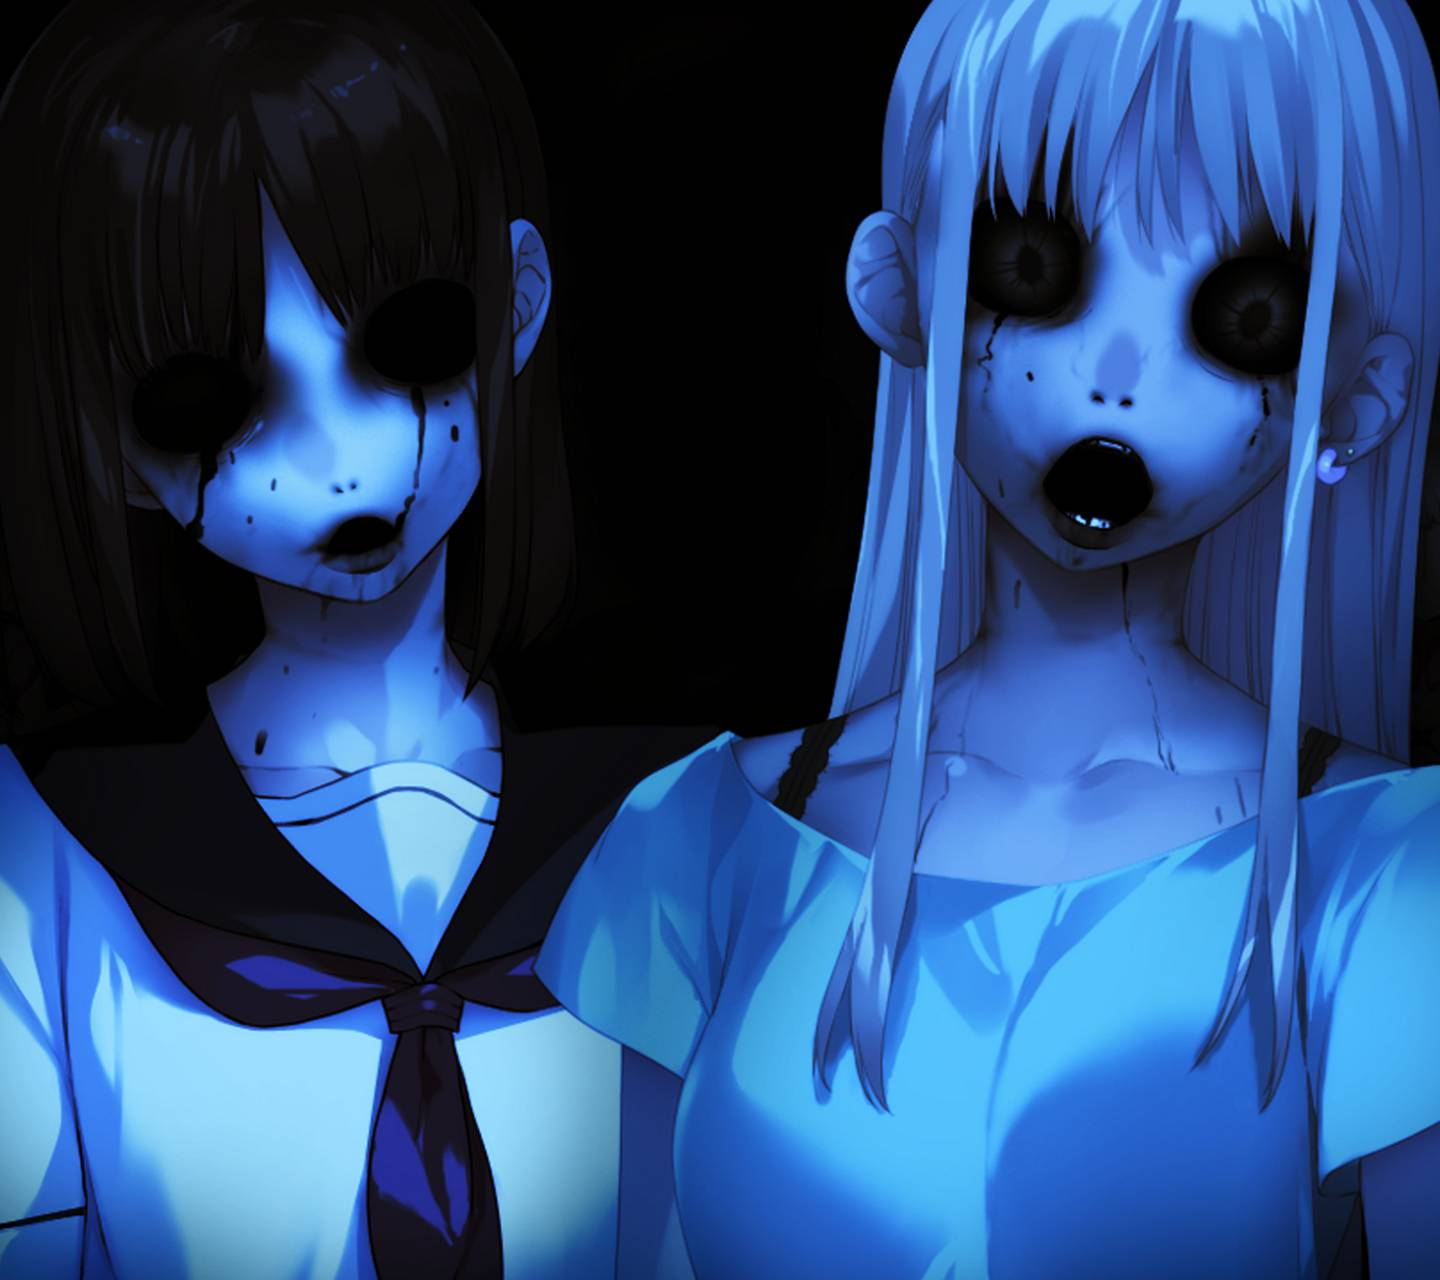 1440x1280 Horror Anime Girl wallpaper by Axime • ZEDGE™ - free your phone